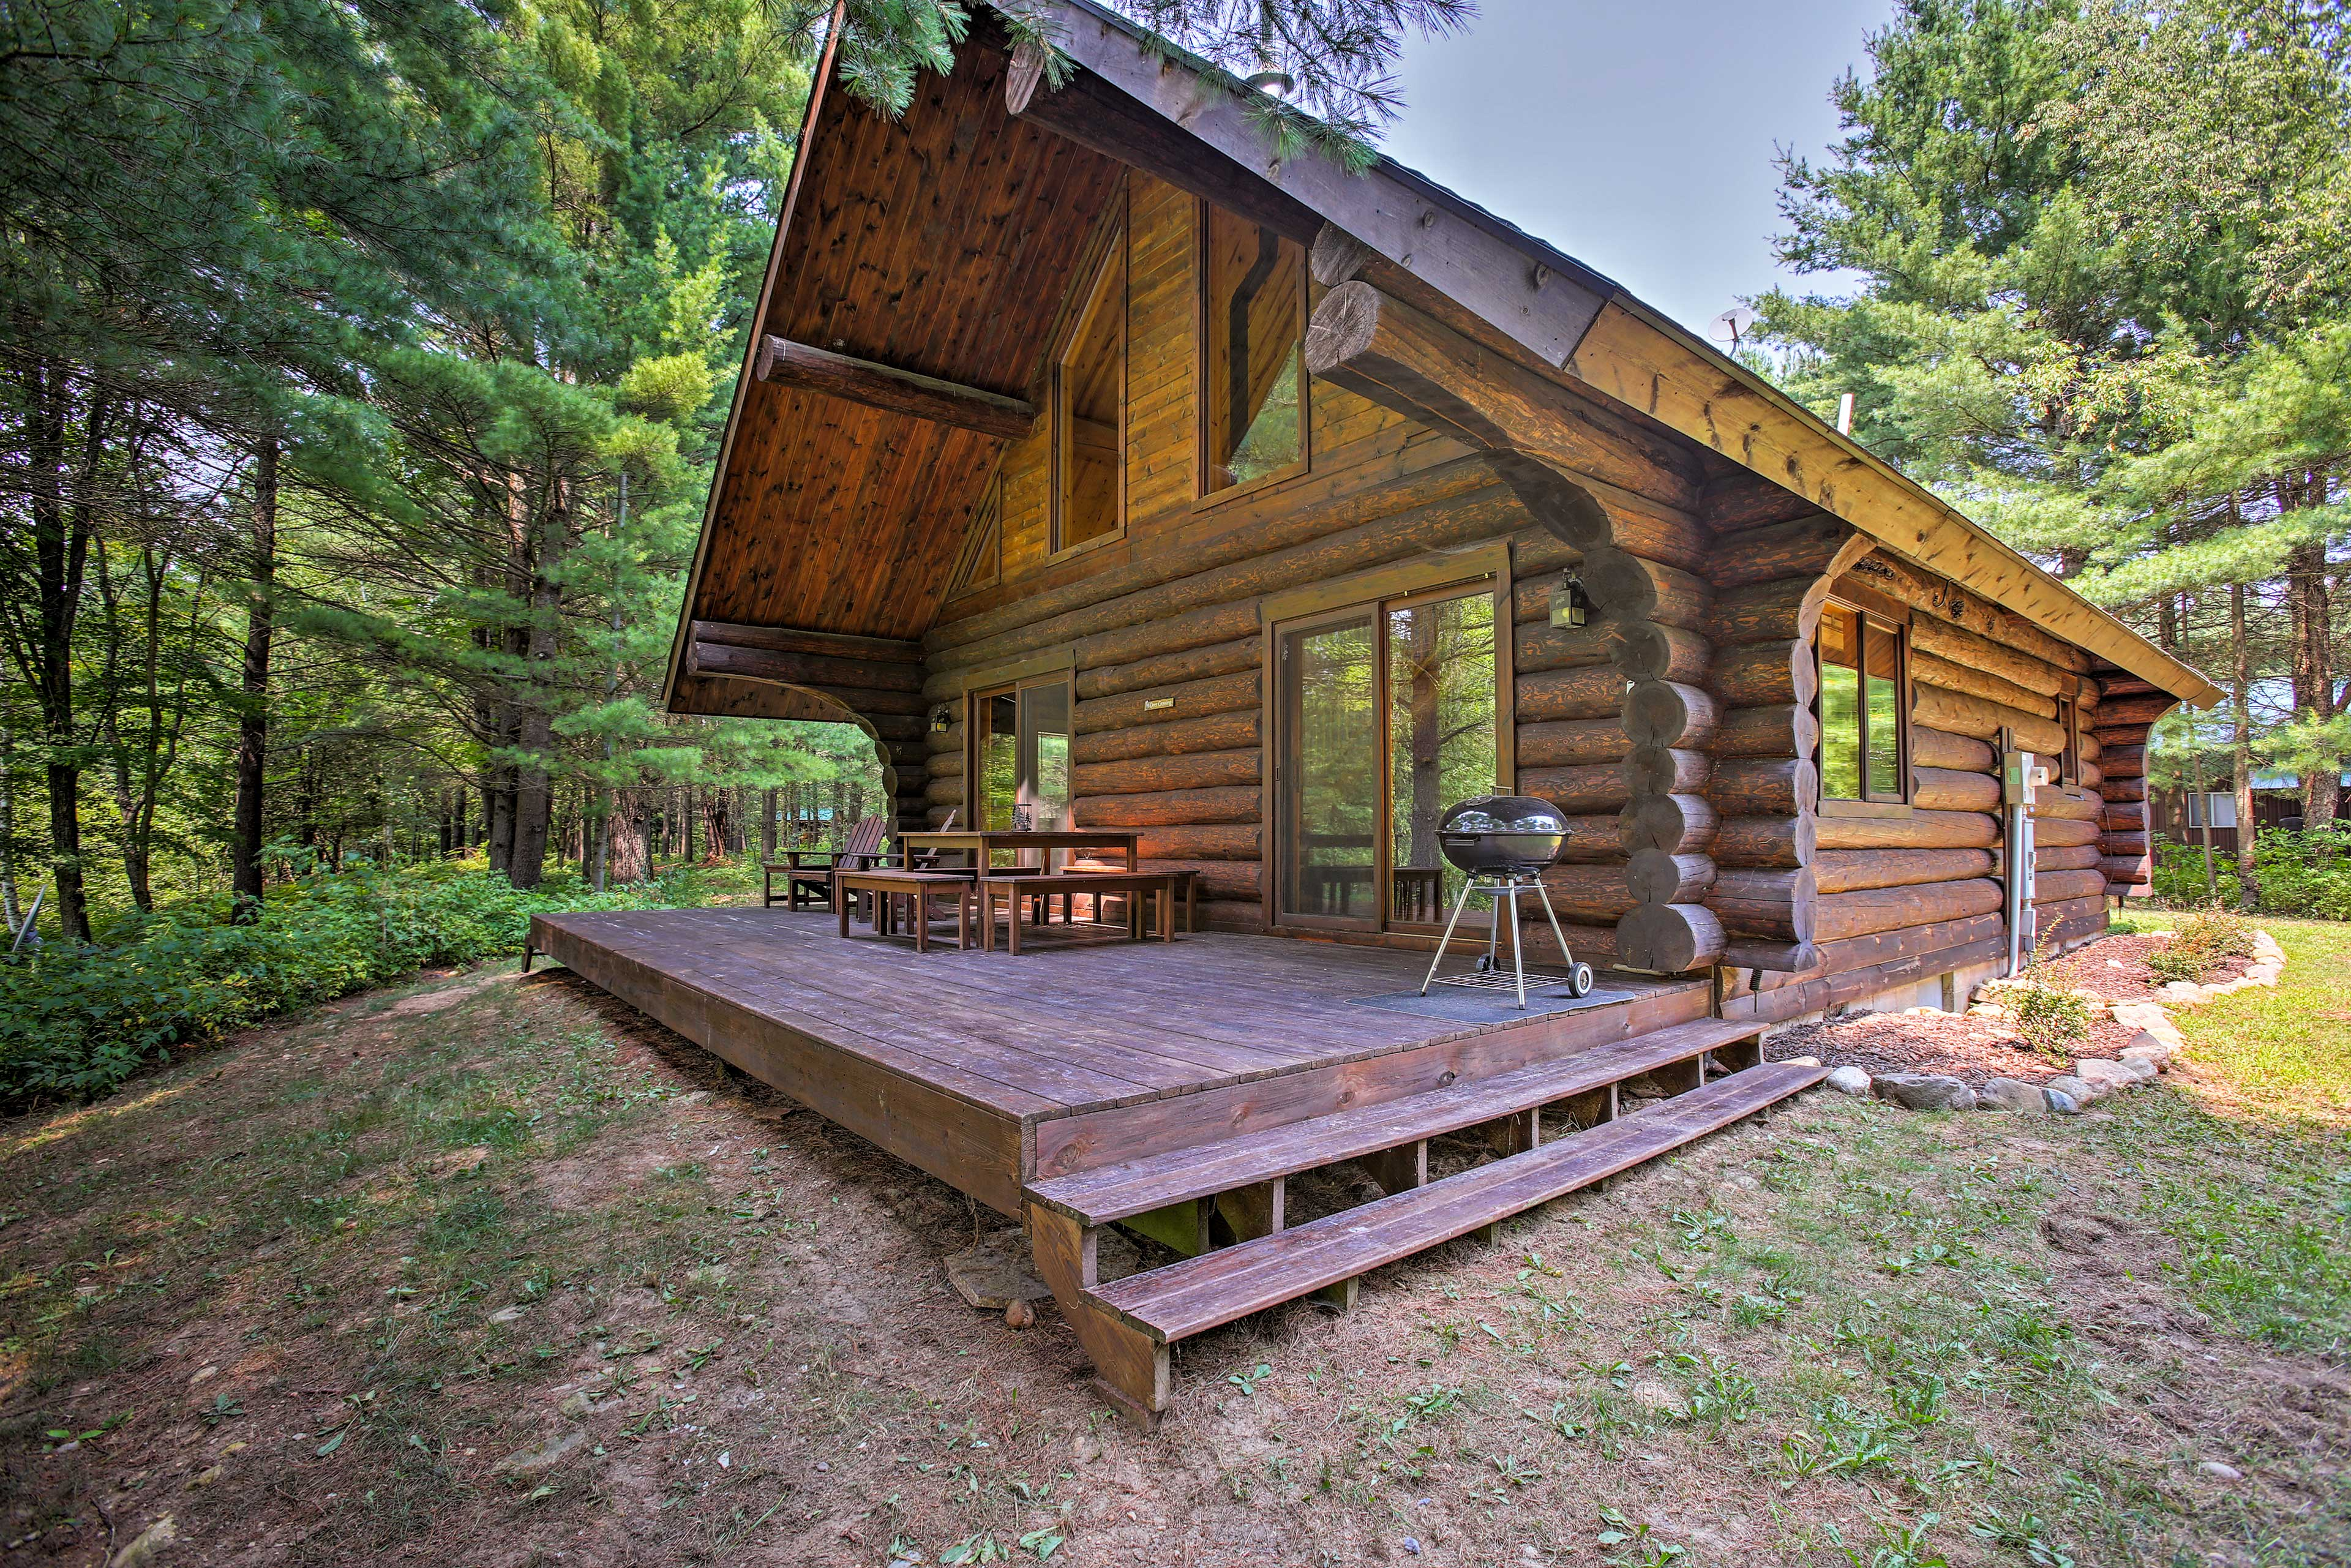 Experience the tranquility & adventures of nature at this secluded log cabin.